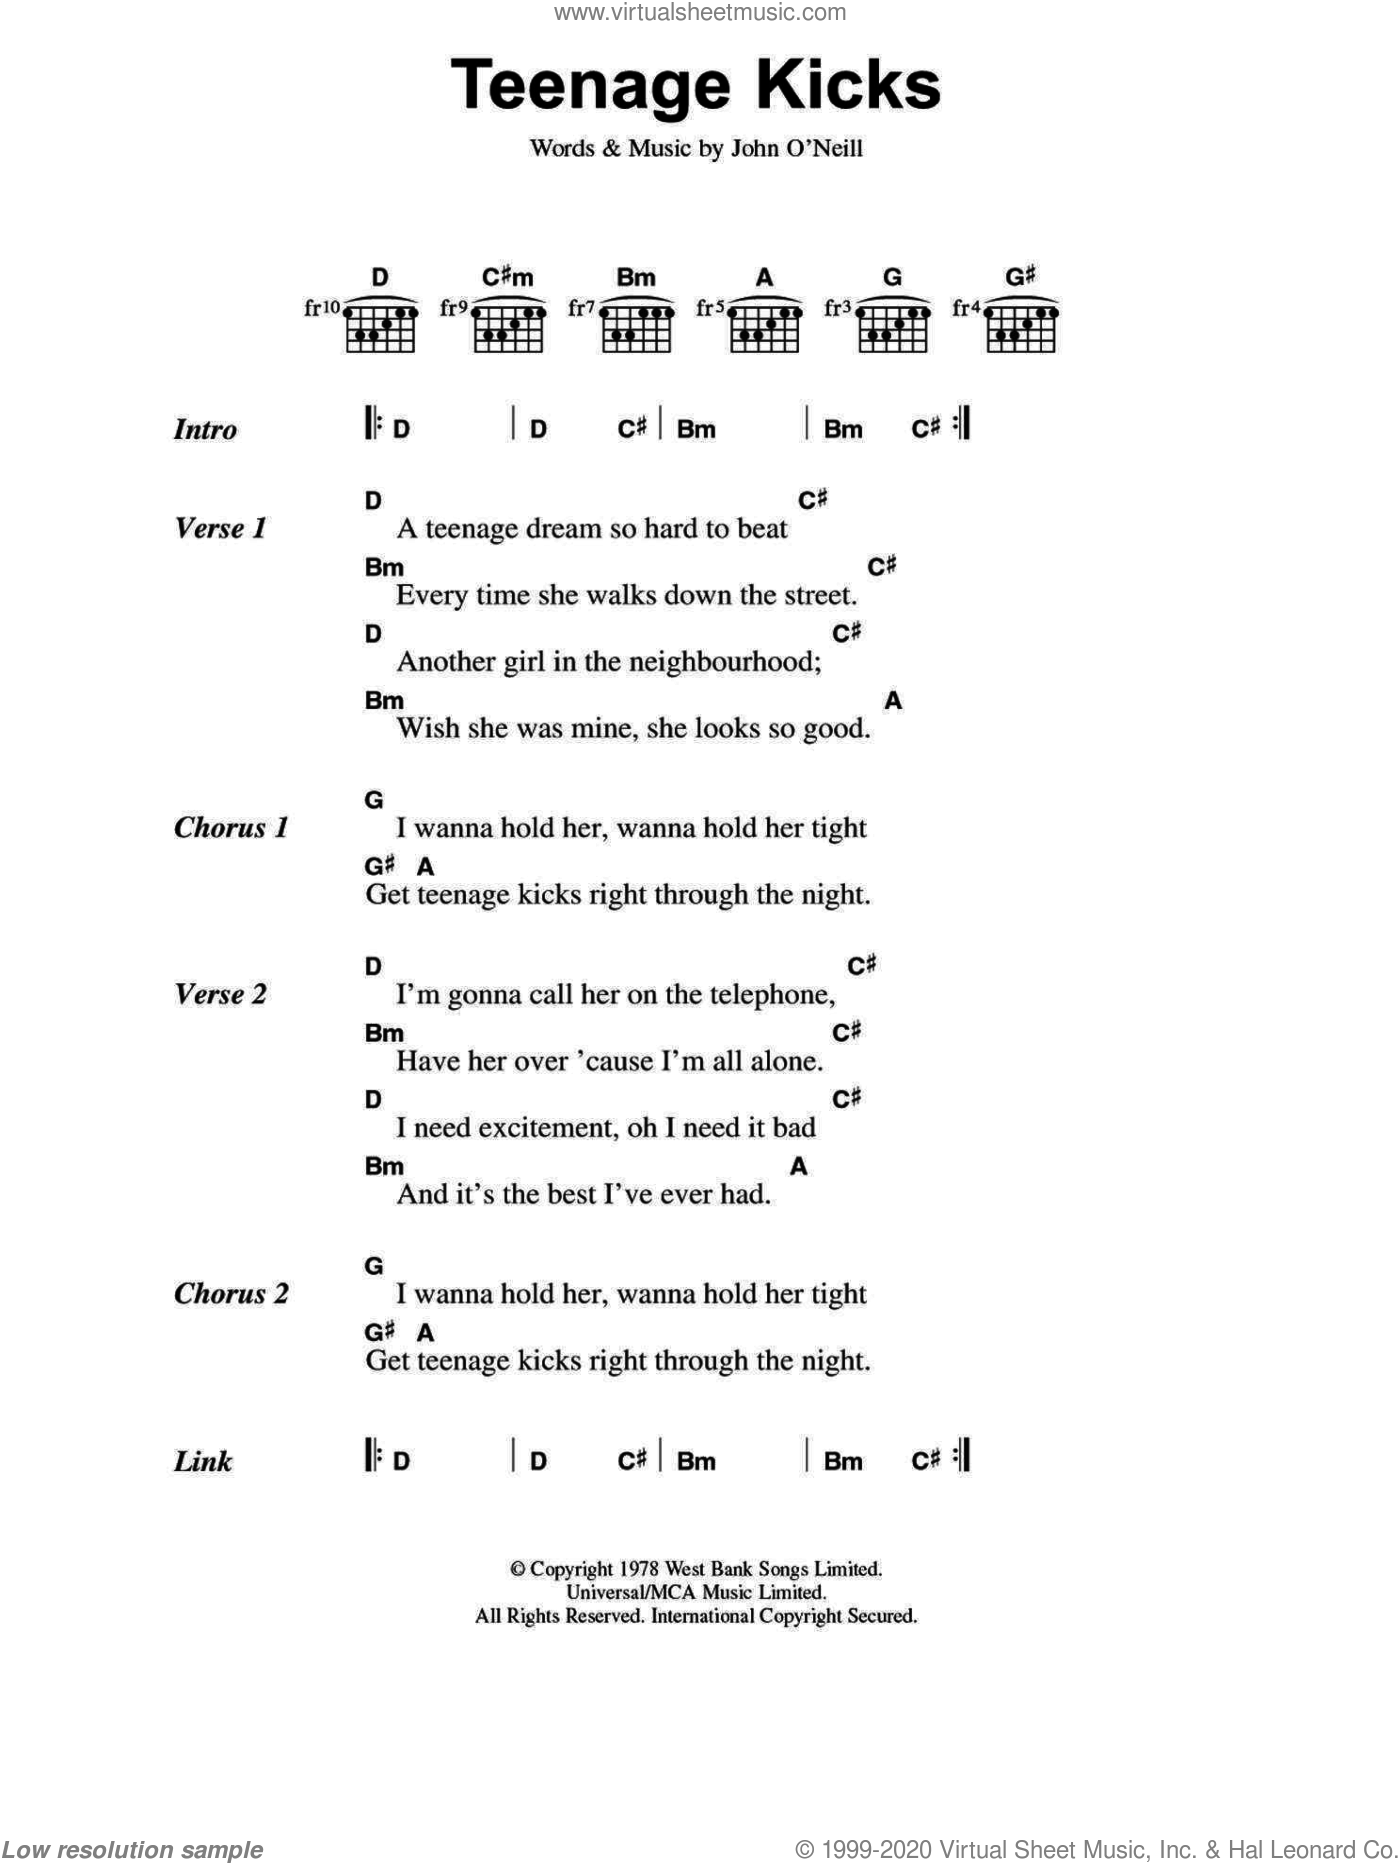 Teenage Kicks sheet music for guitar (chords) by John O'Neill